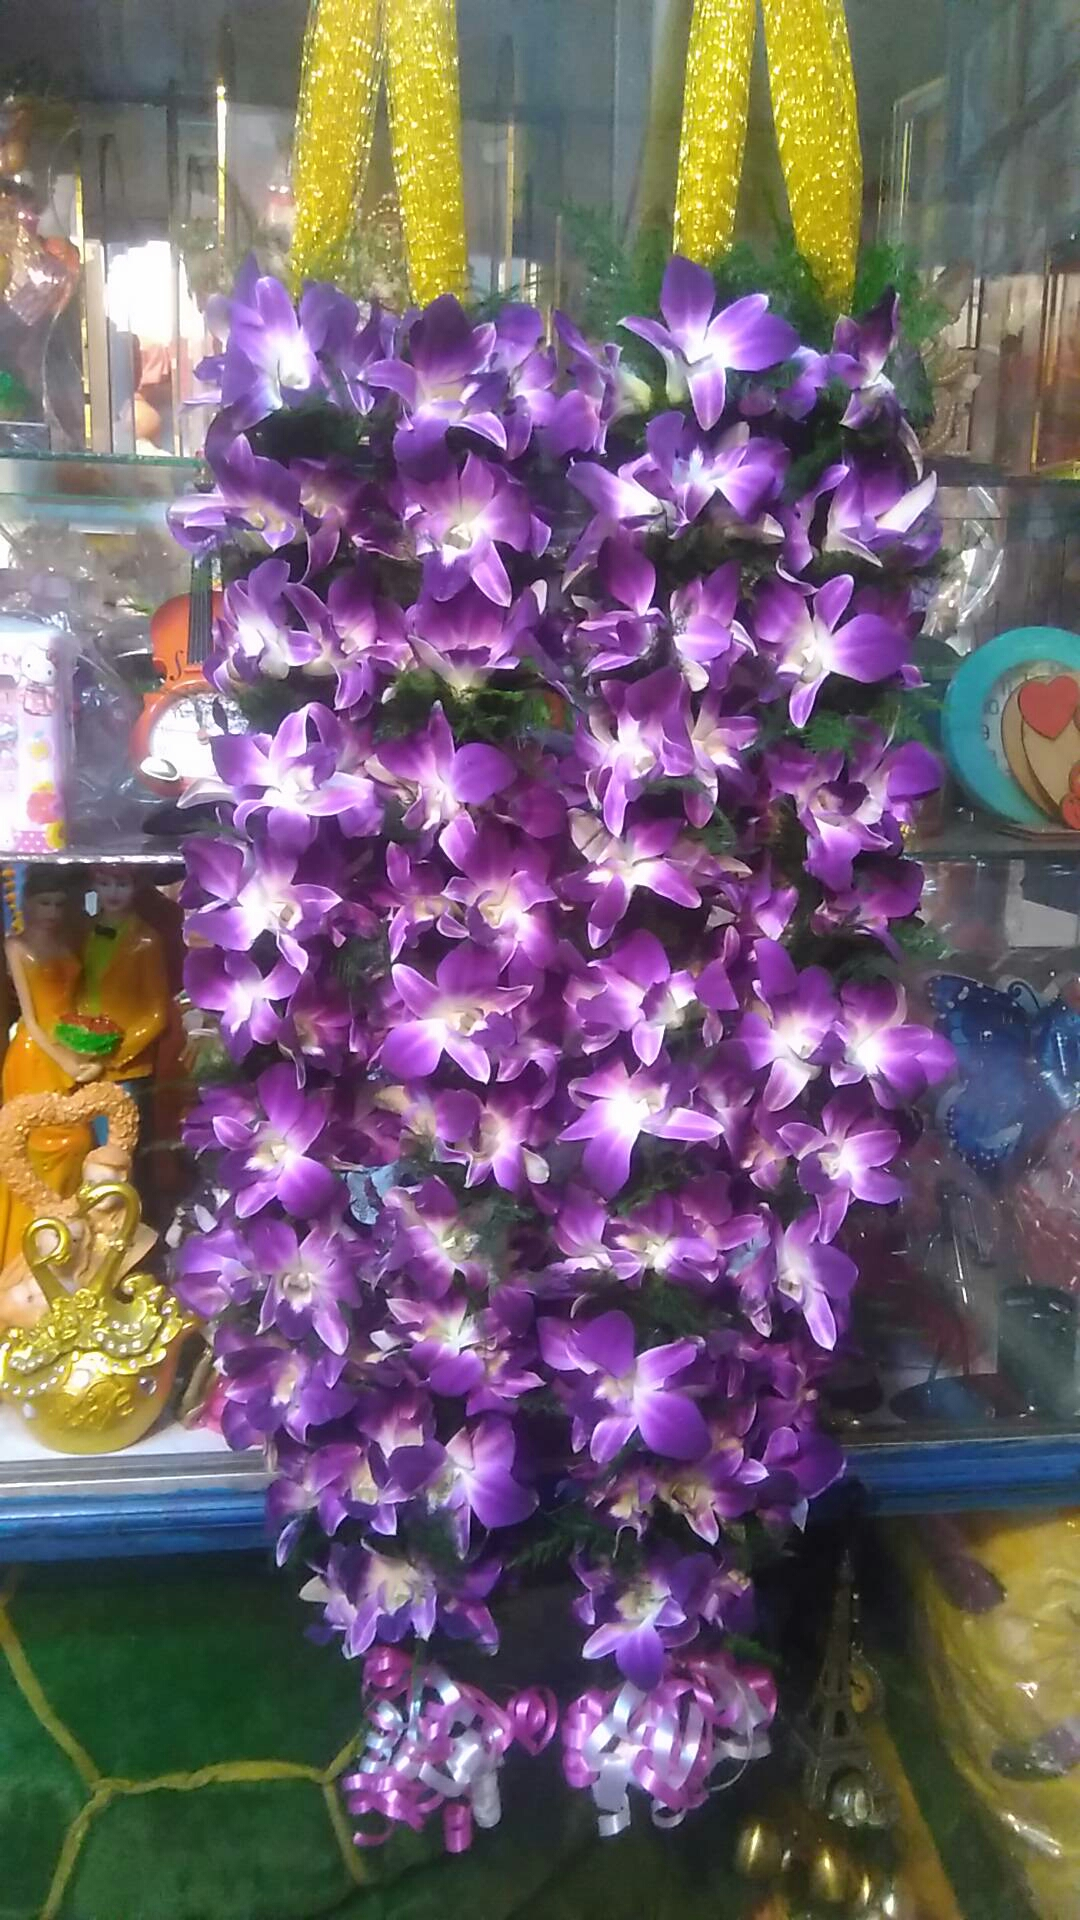 orchid Jaimal in kanpur